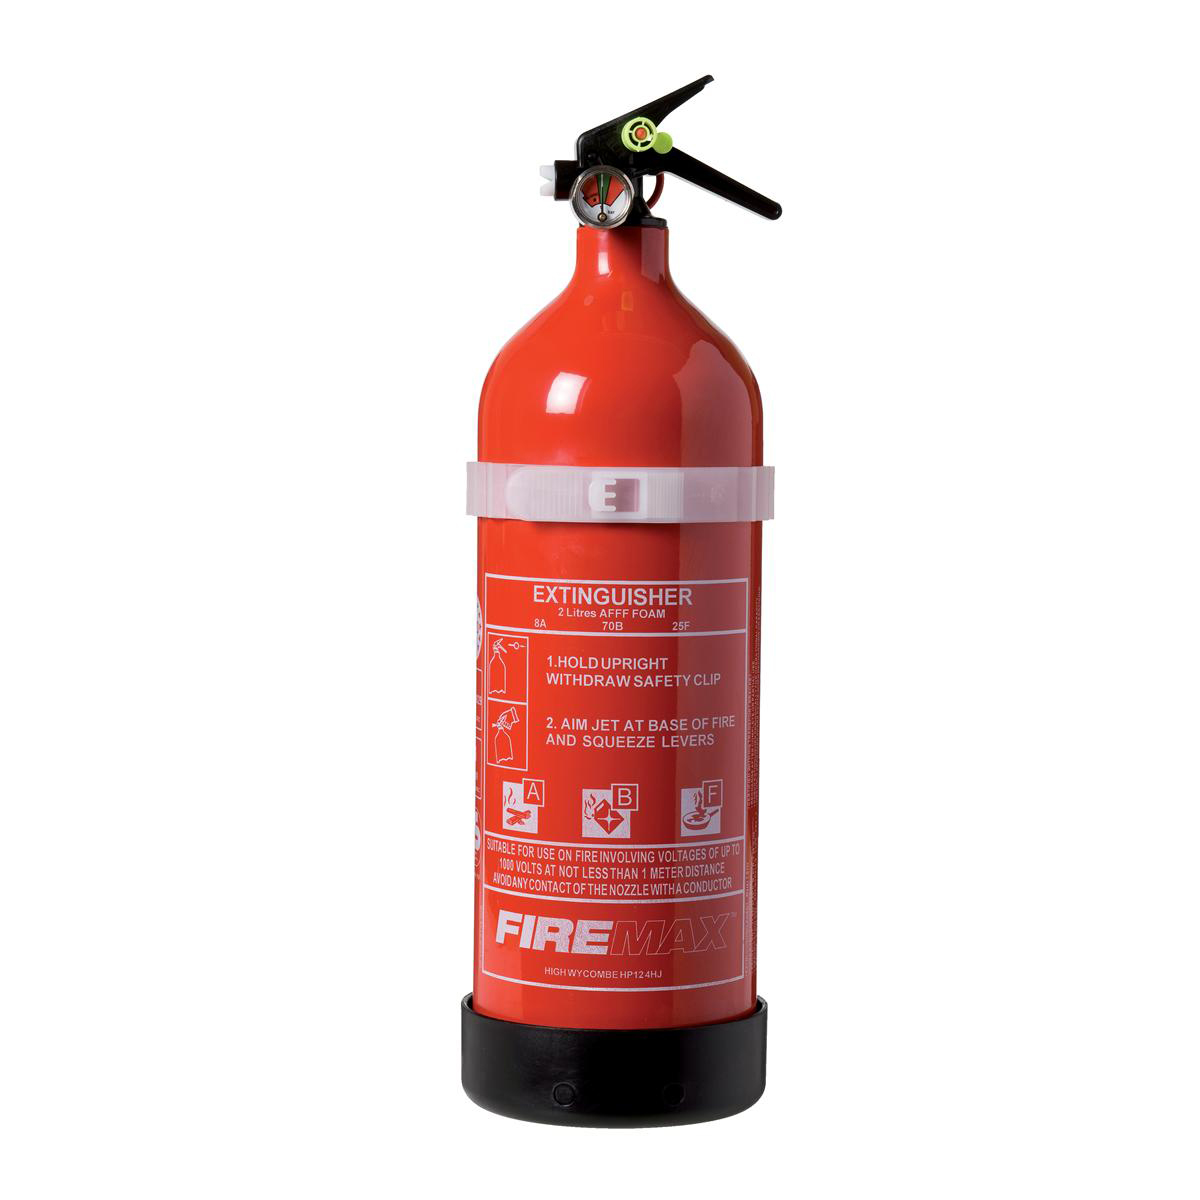 Foam IVG 2.0LTR Foam Fire Extinguisher for Class A and B Fires Ref WG10130